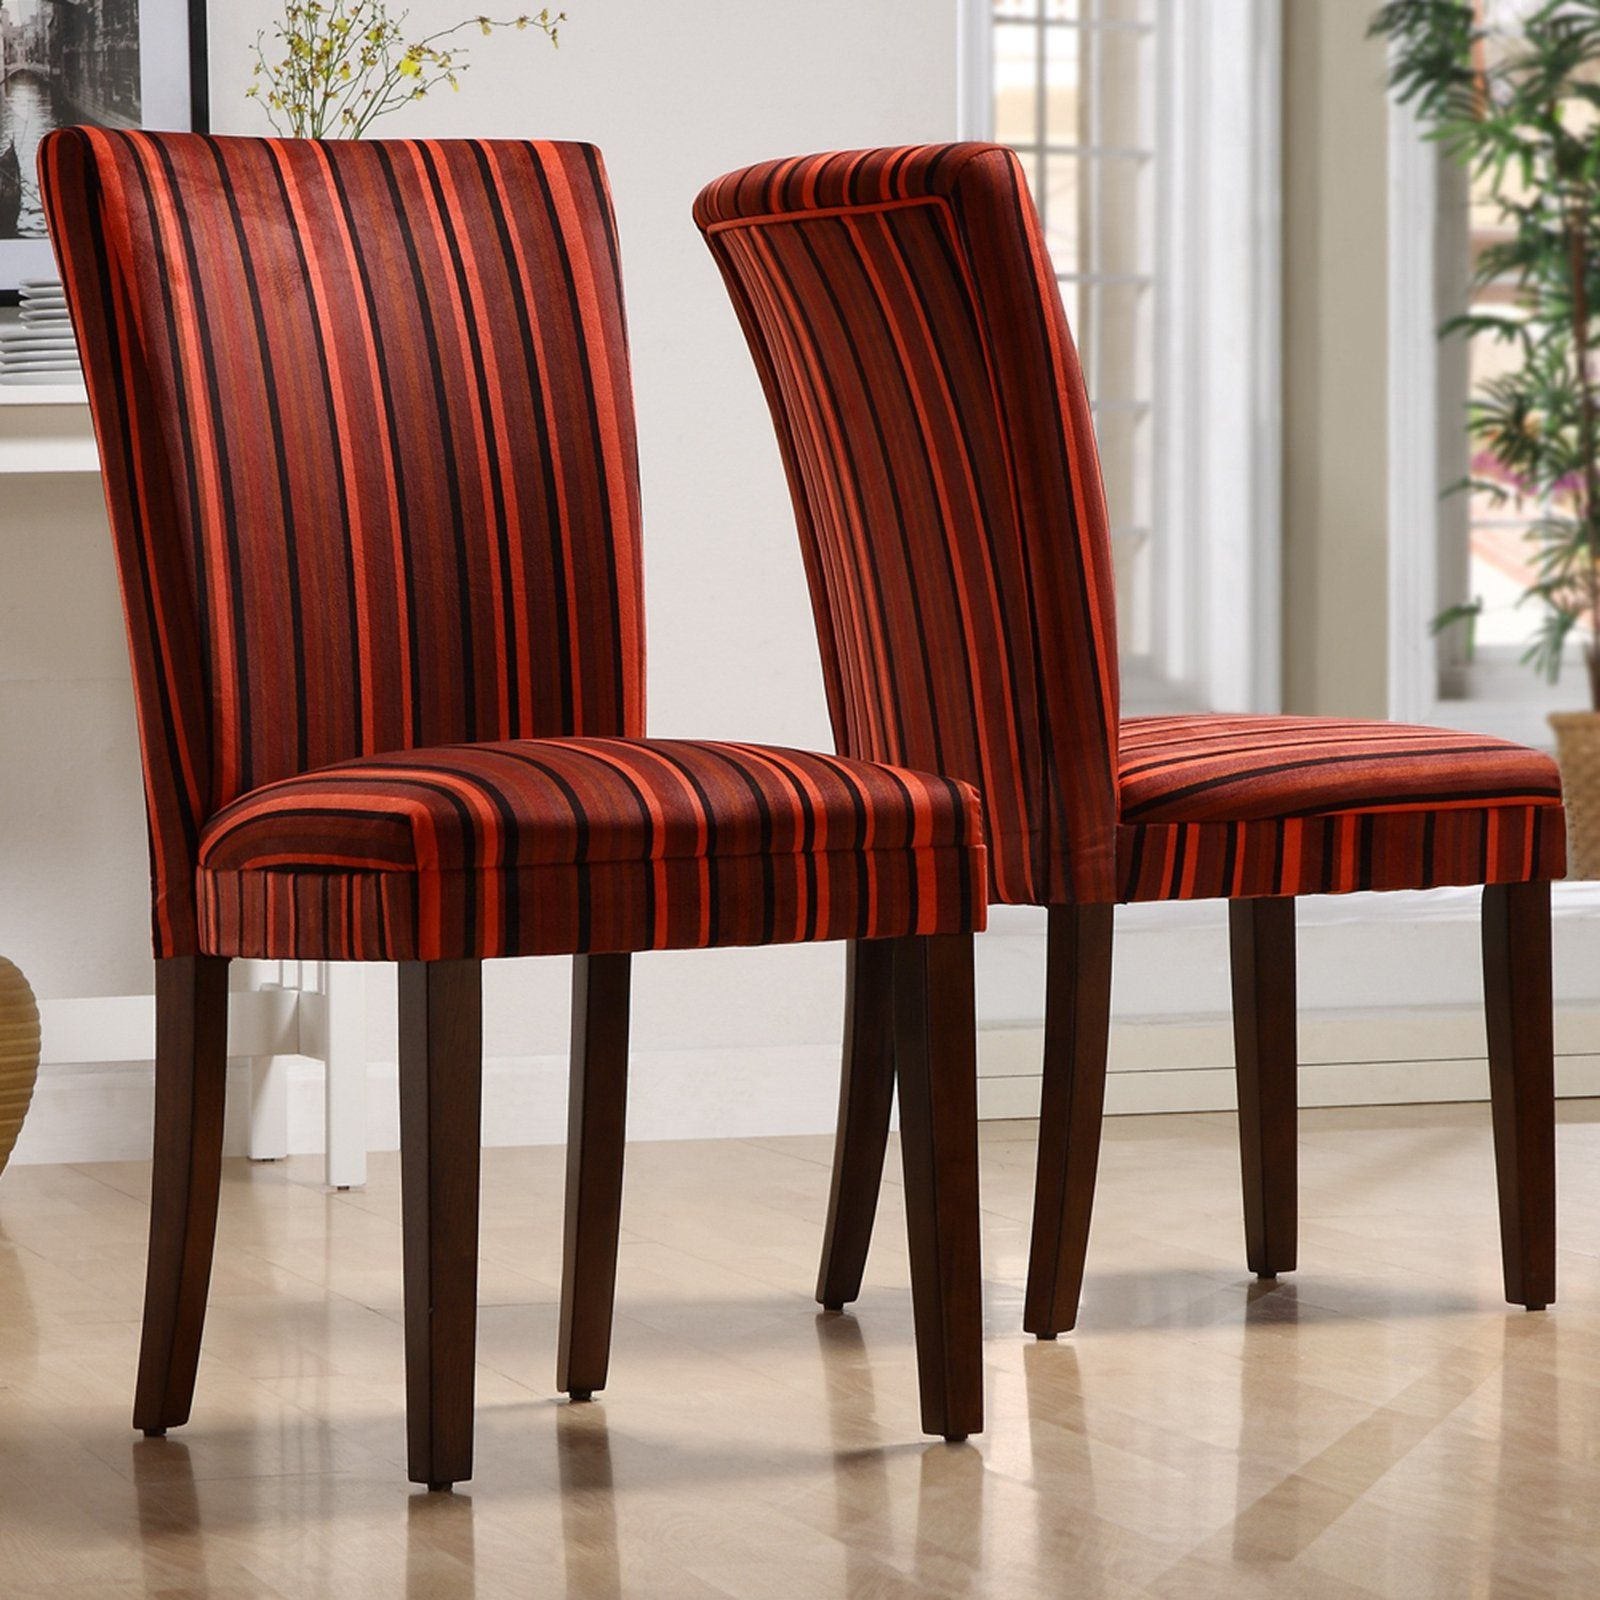 Homelegance royal red striped design fabric parson chairs for What is a parsons chair style